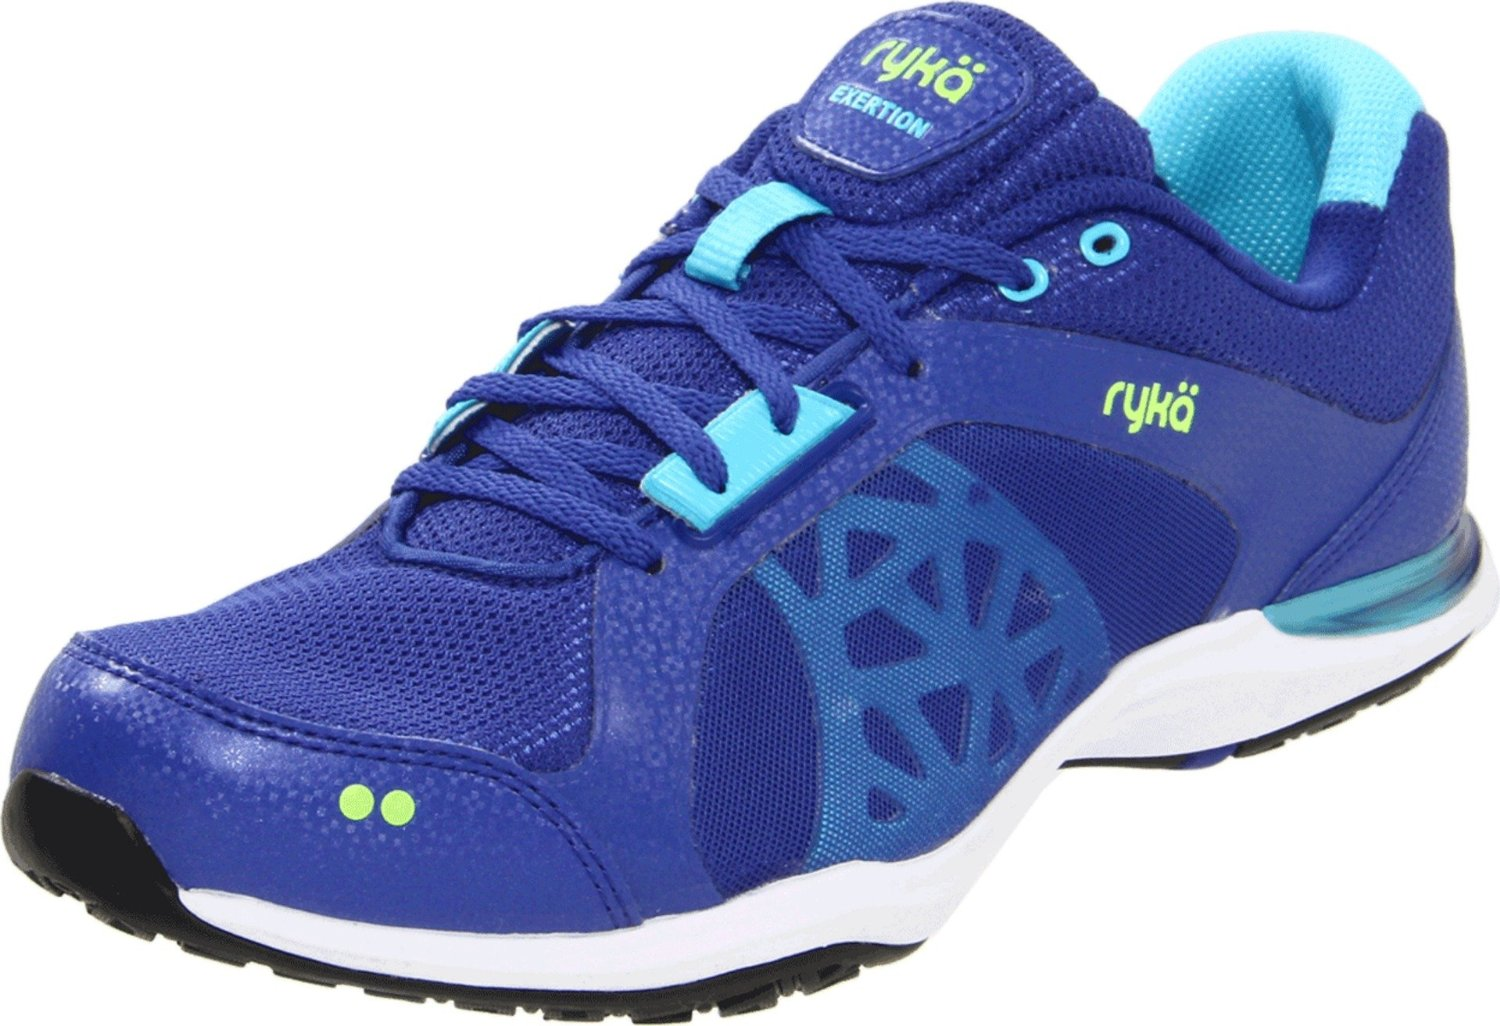 womens running shoes | The Divine Hostess